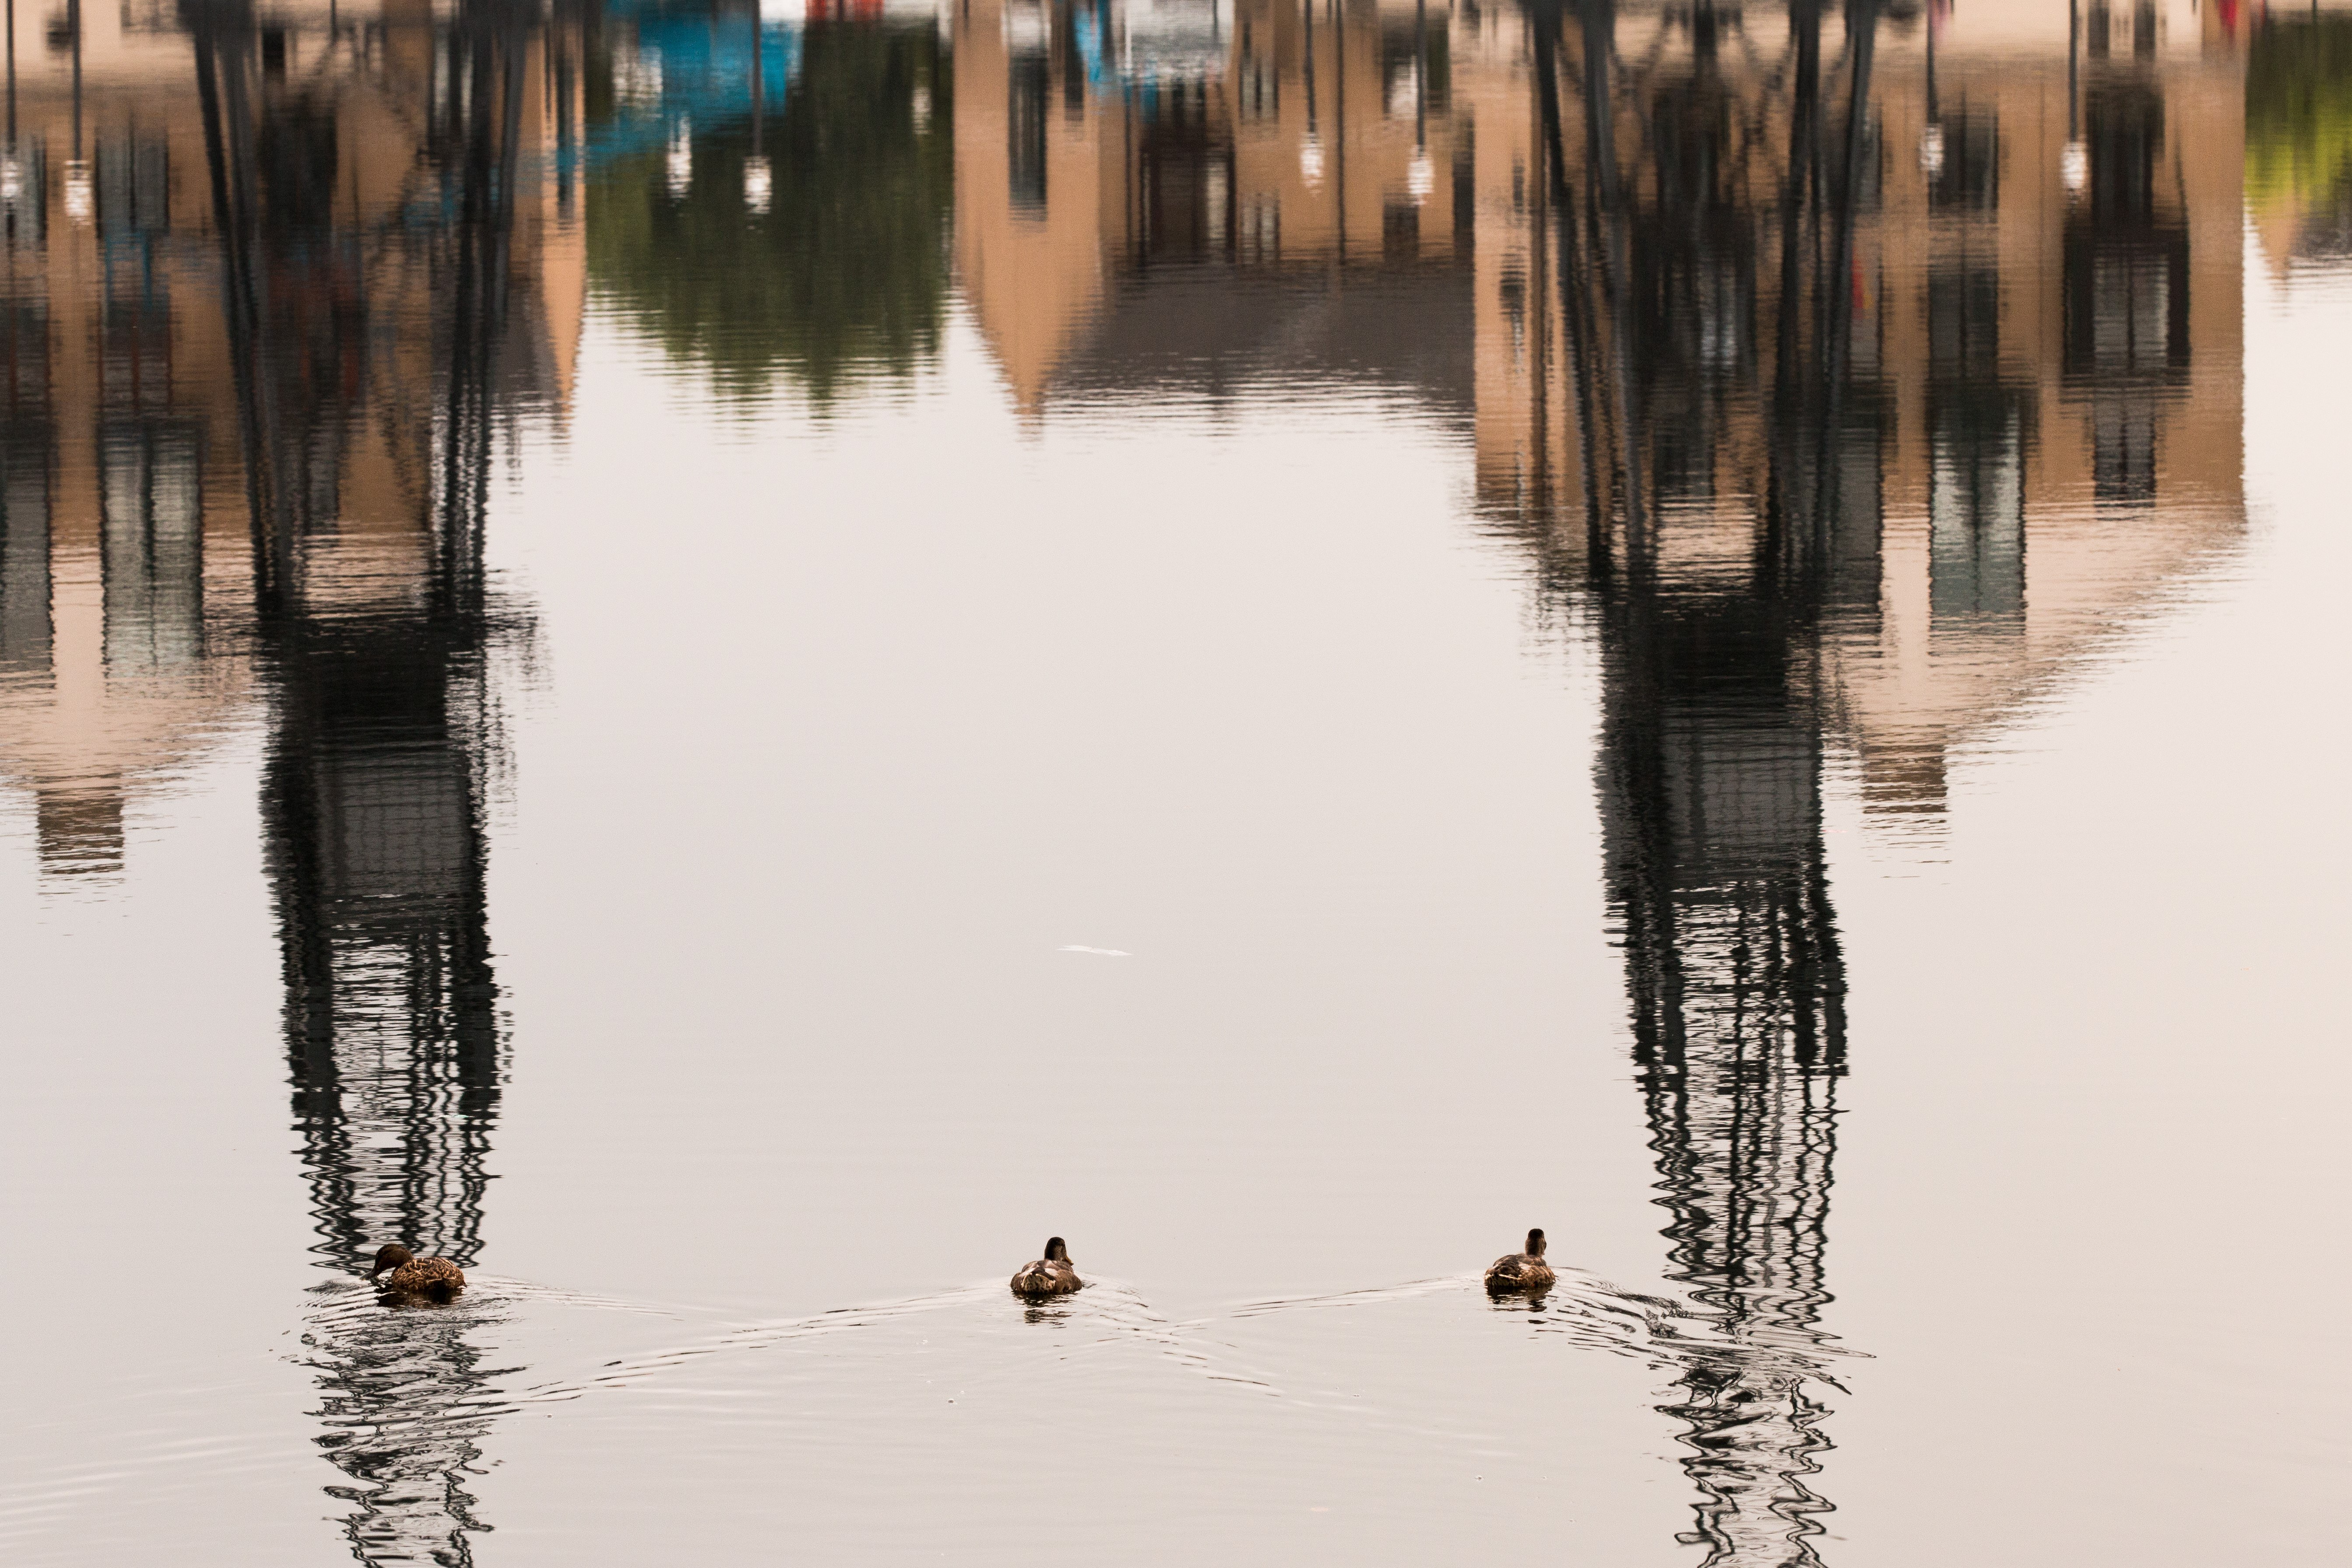 Three birds swimming in the water at the Royal Docks